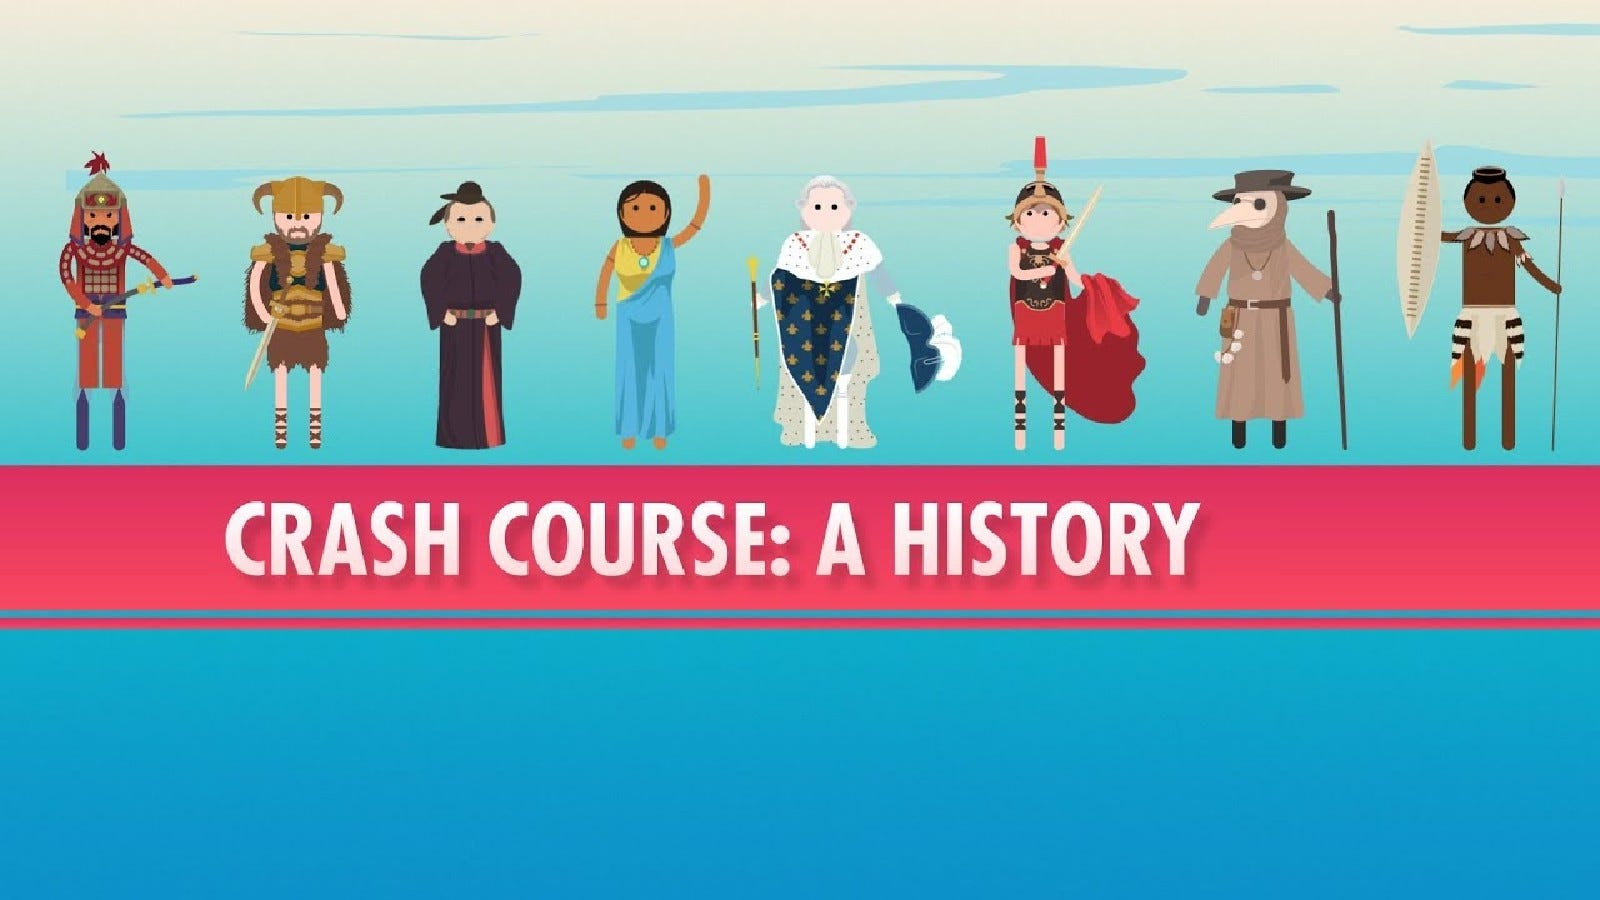 A promotional image for Crash Course featuring historical figures.